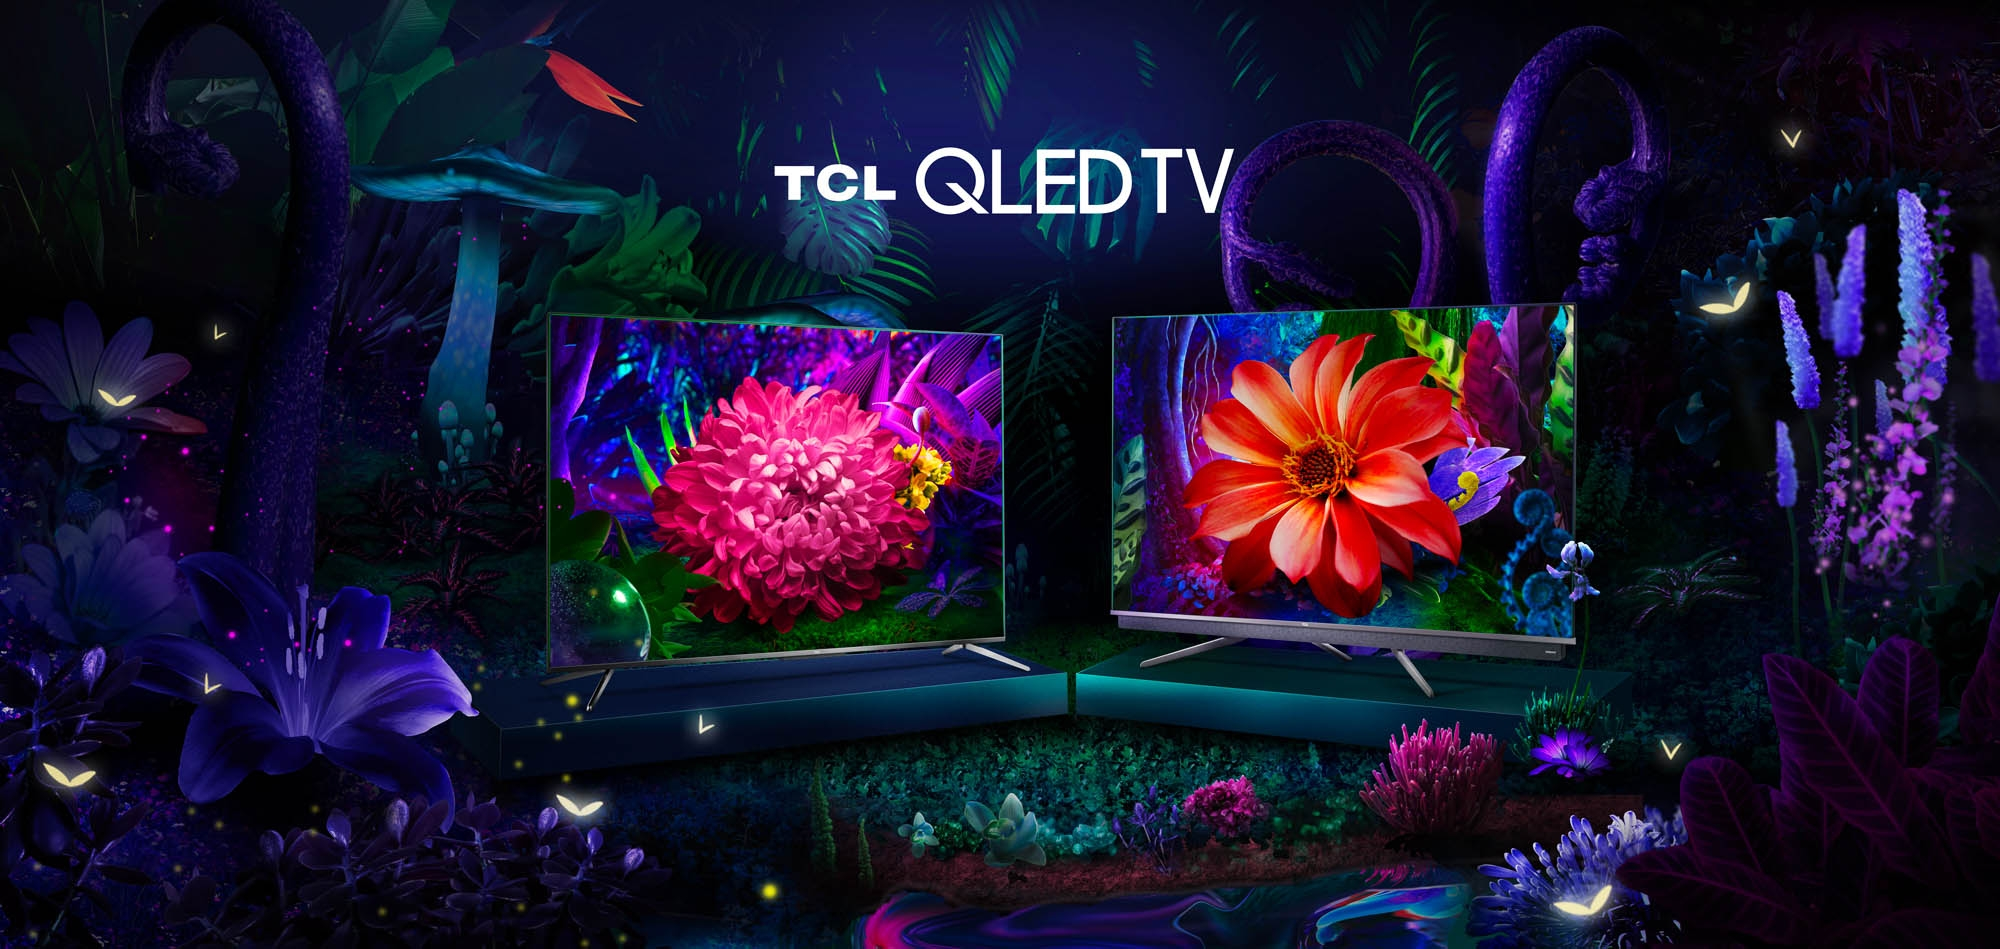 TCL at CES 2020 – What's Coming in the Future?